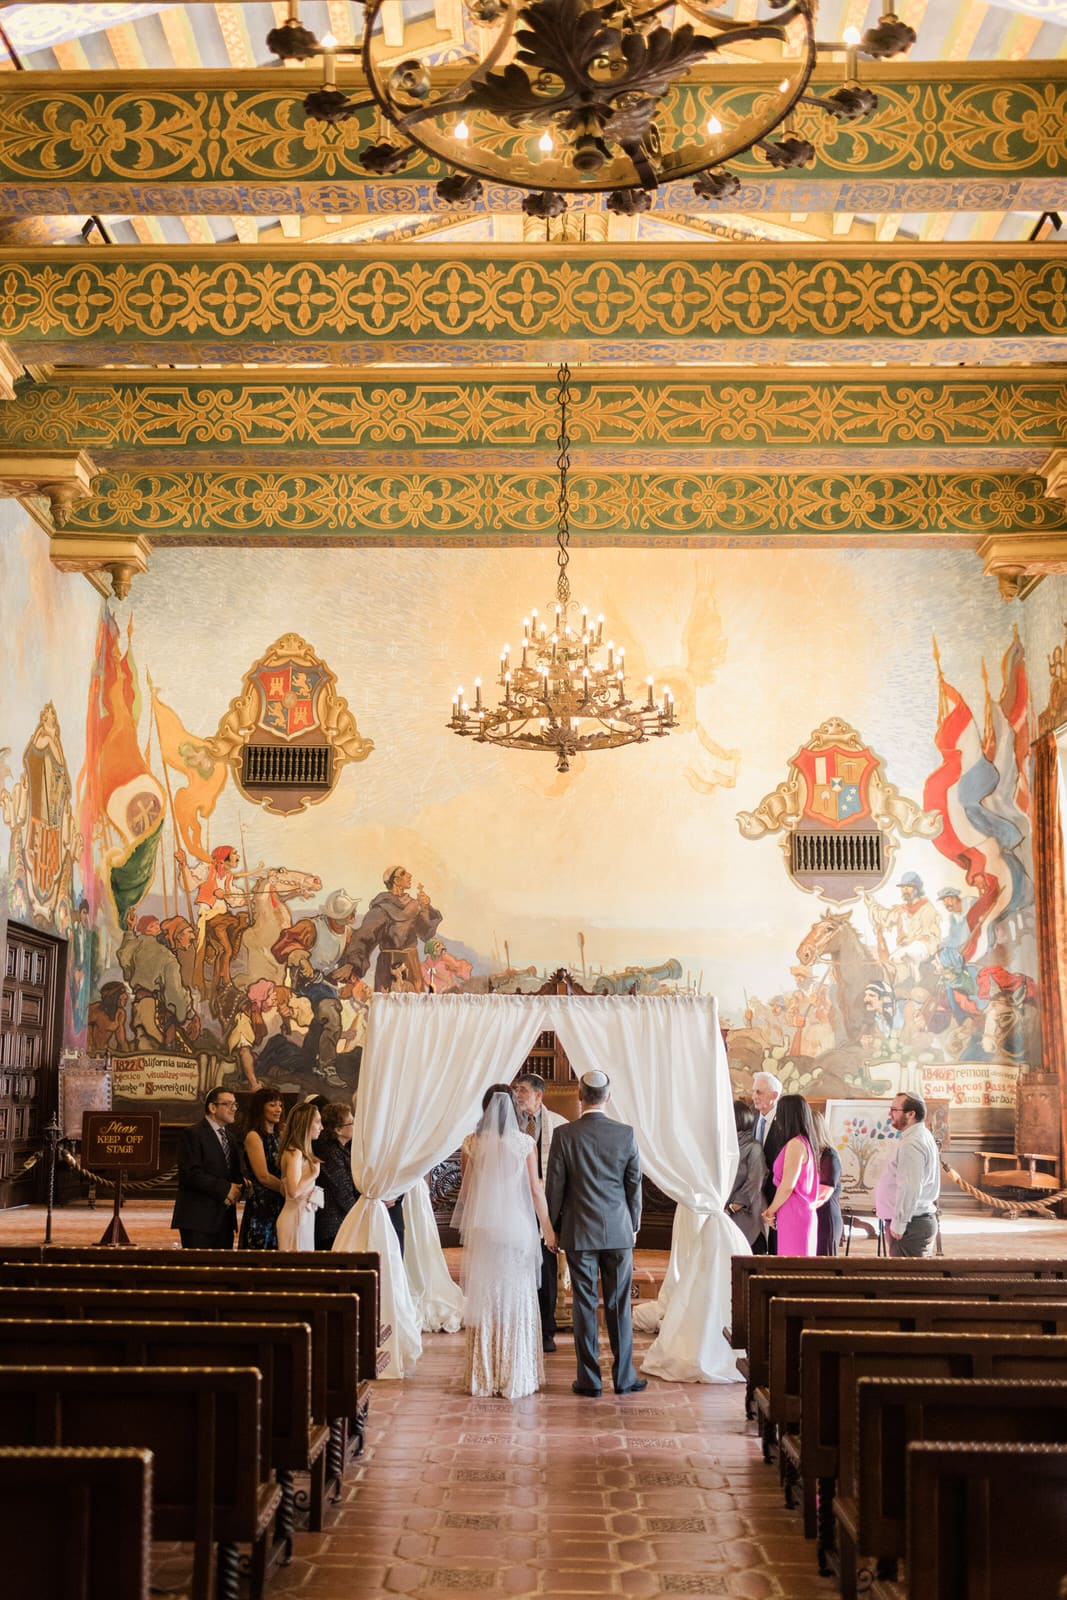 MURAL ROOM WEDDING SANTA BARBARA COURTHOUSE